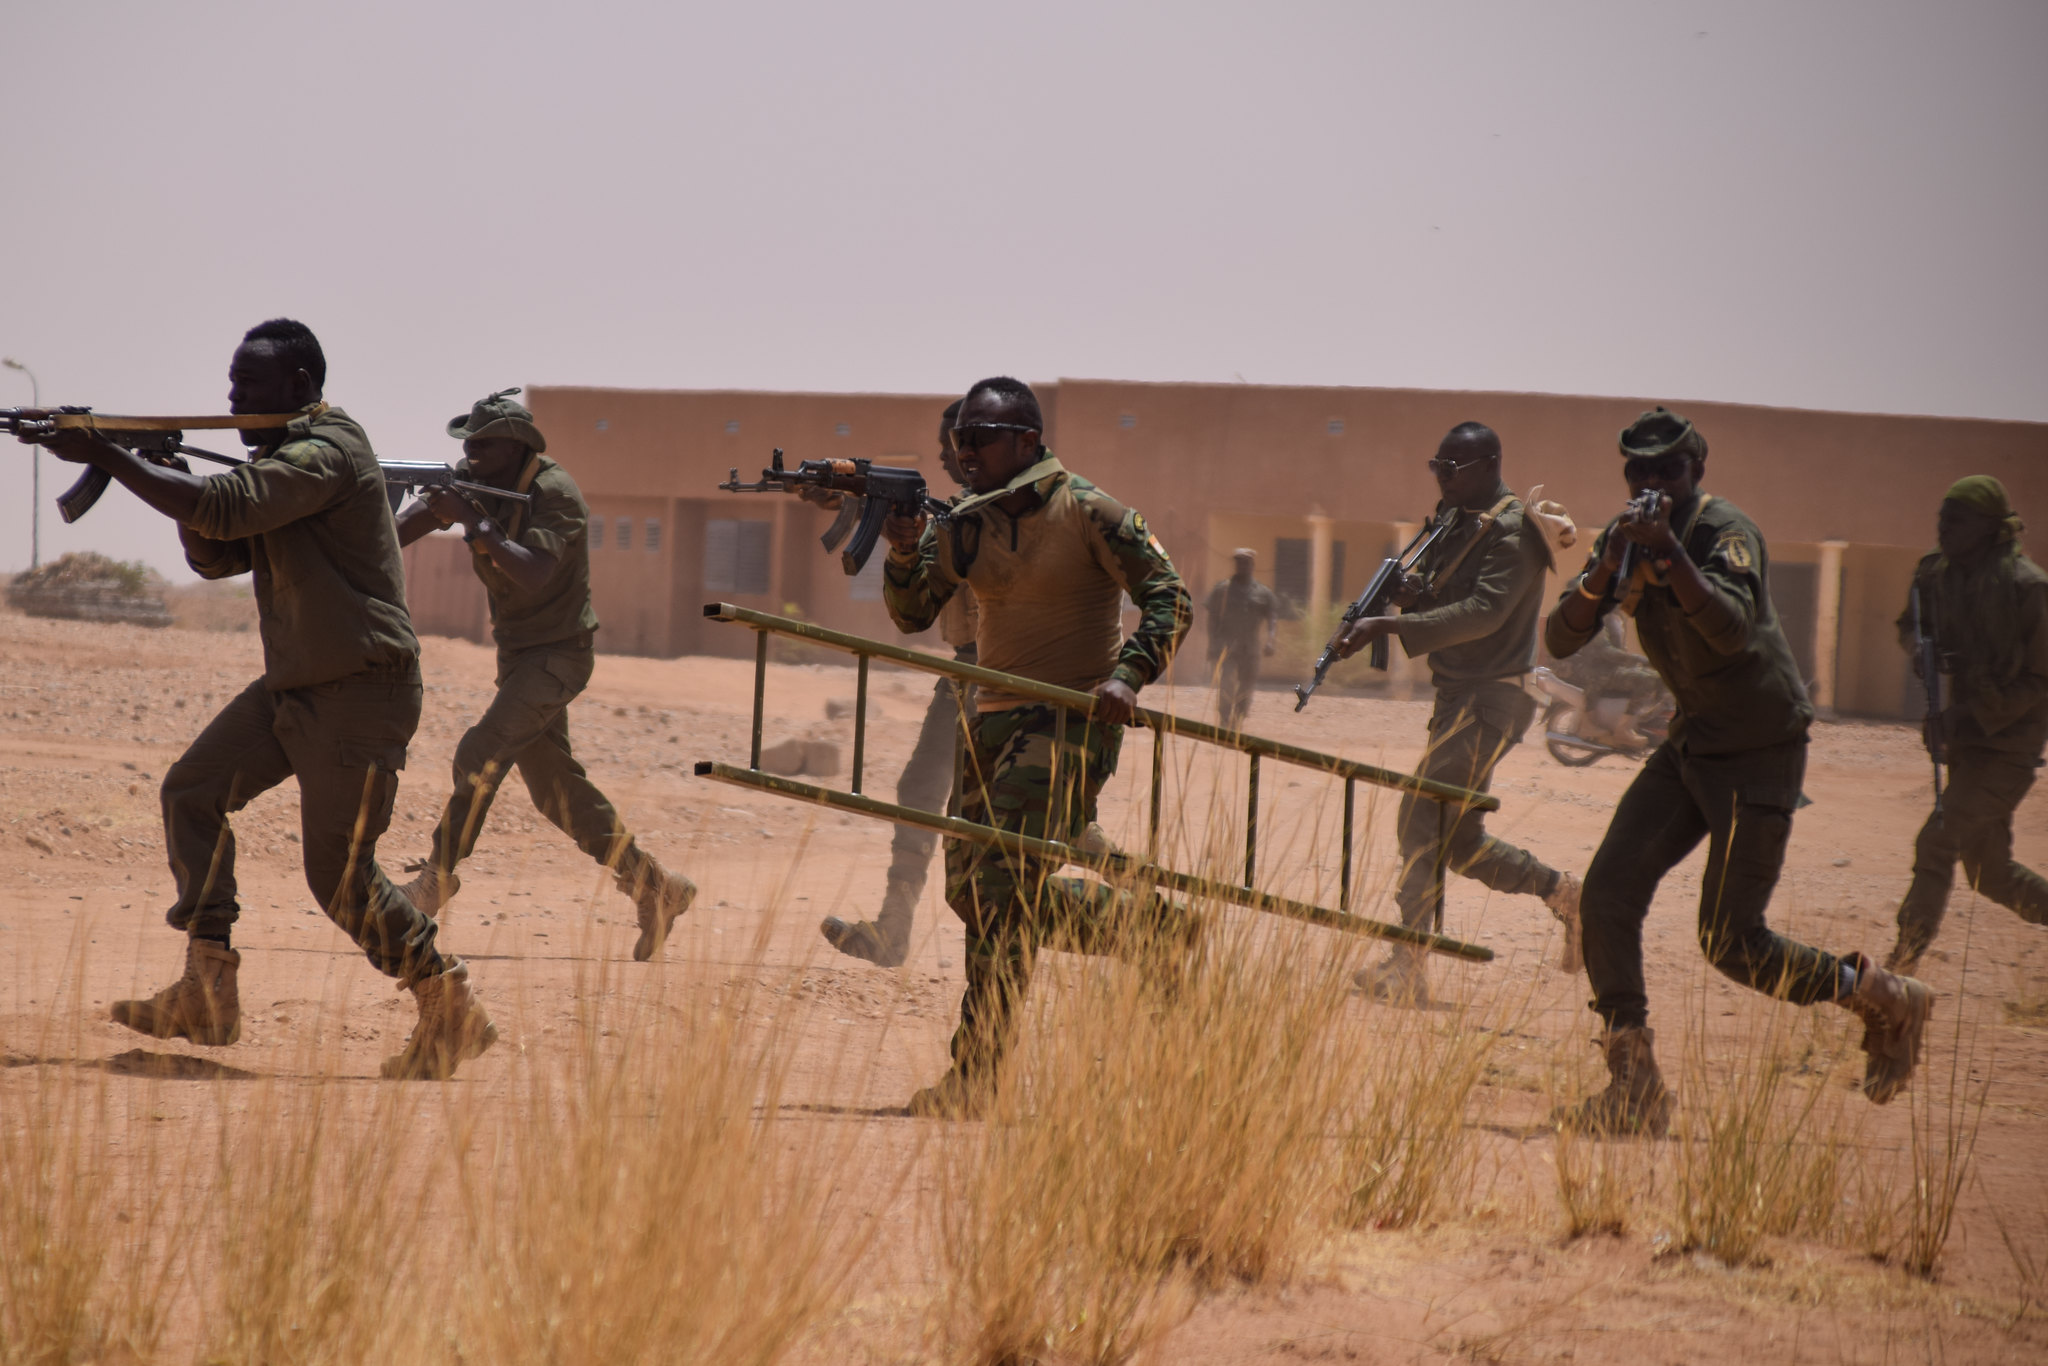 Will Mali be the next Libya or Syria?